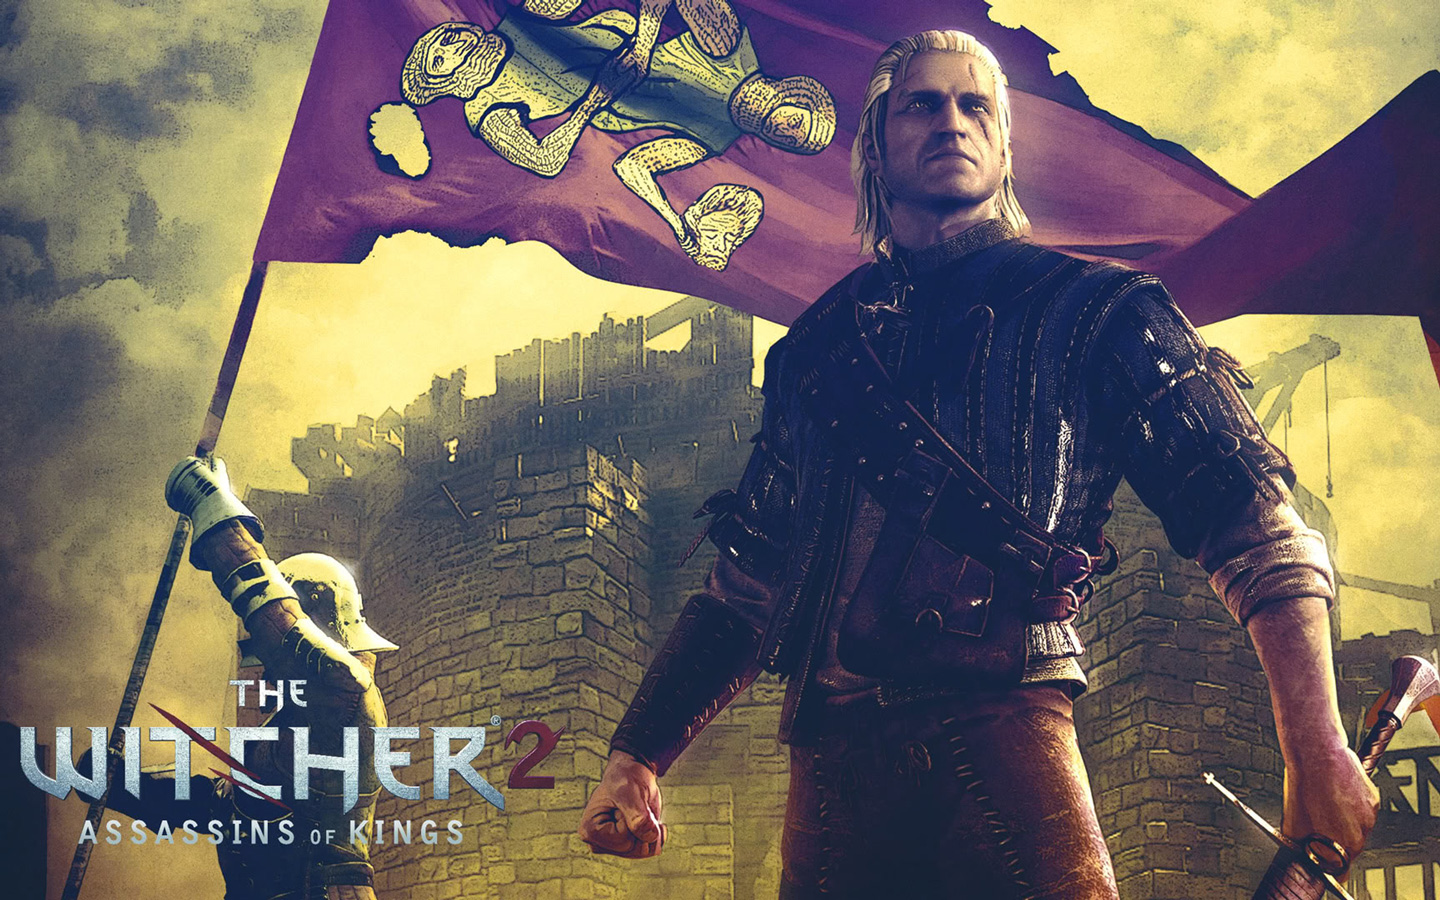 Free The Witcher 2 Wallpaper in 1440x900